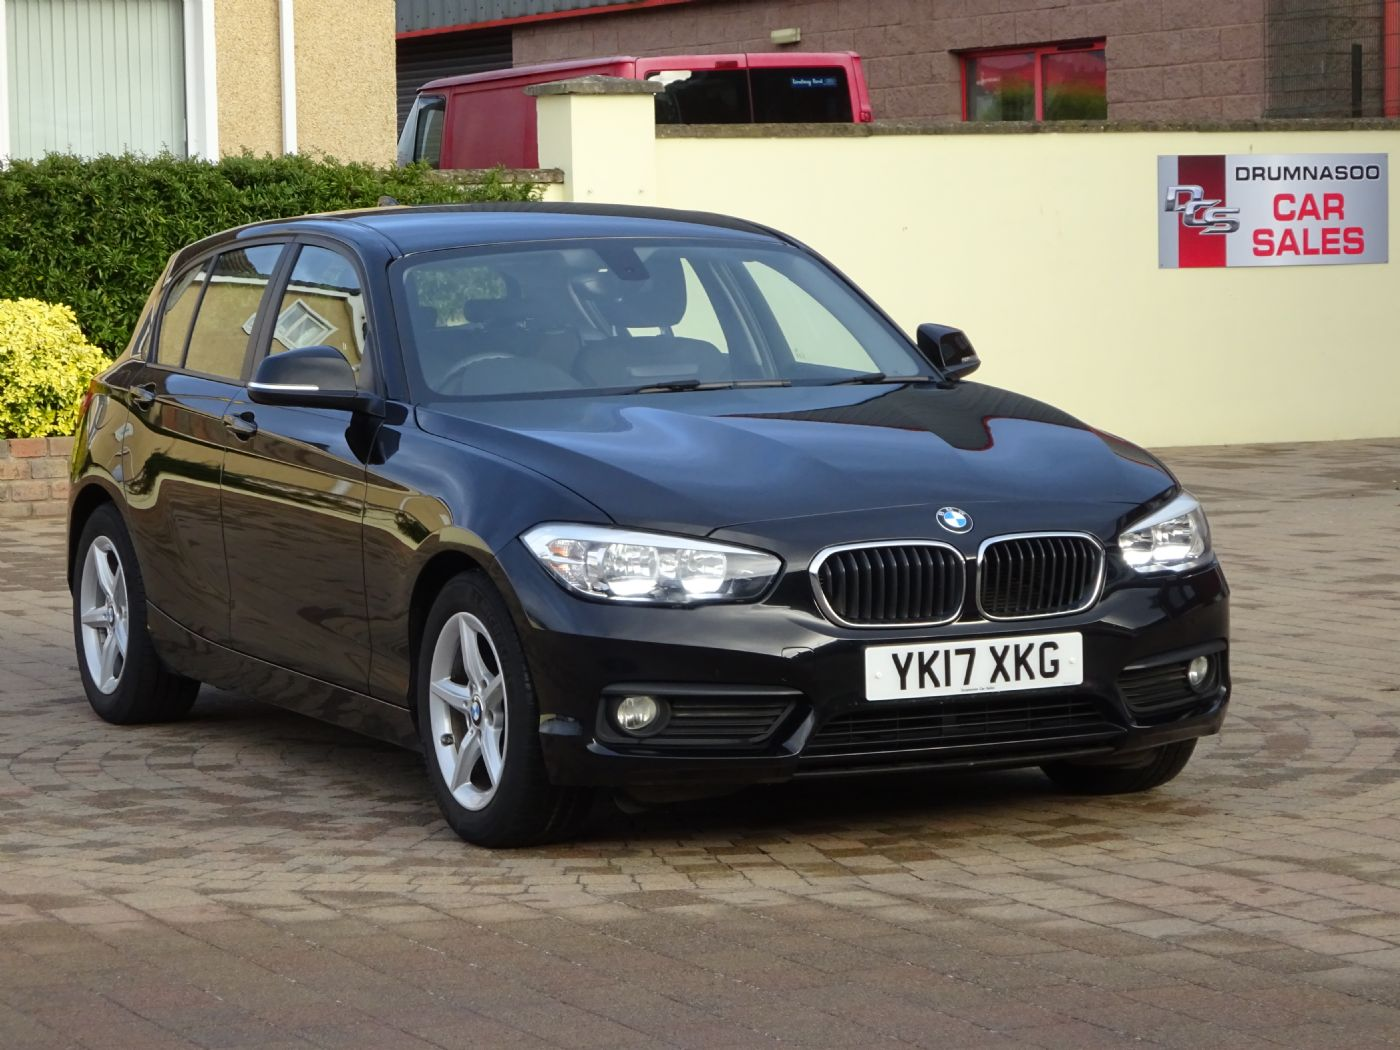 BMW 116D ED Plus, Rear parking sensors, Sat nav, Zero road tax